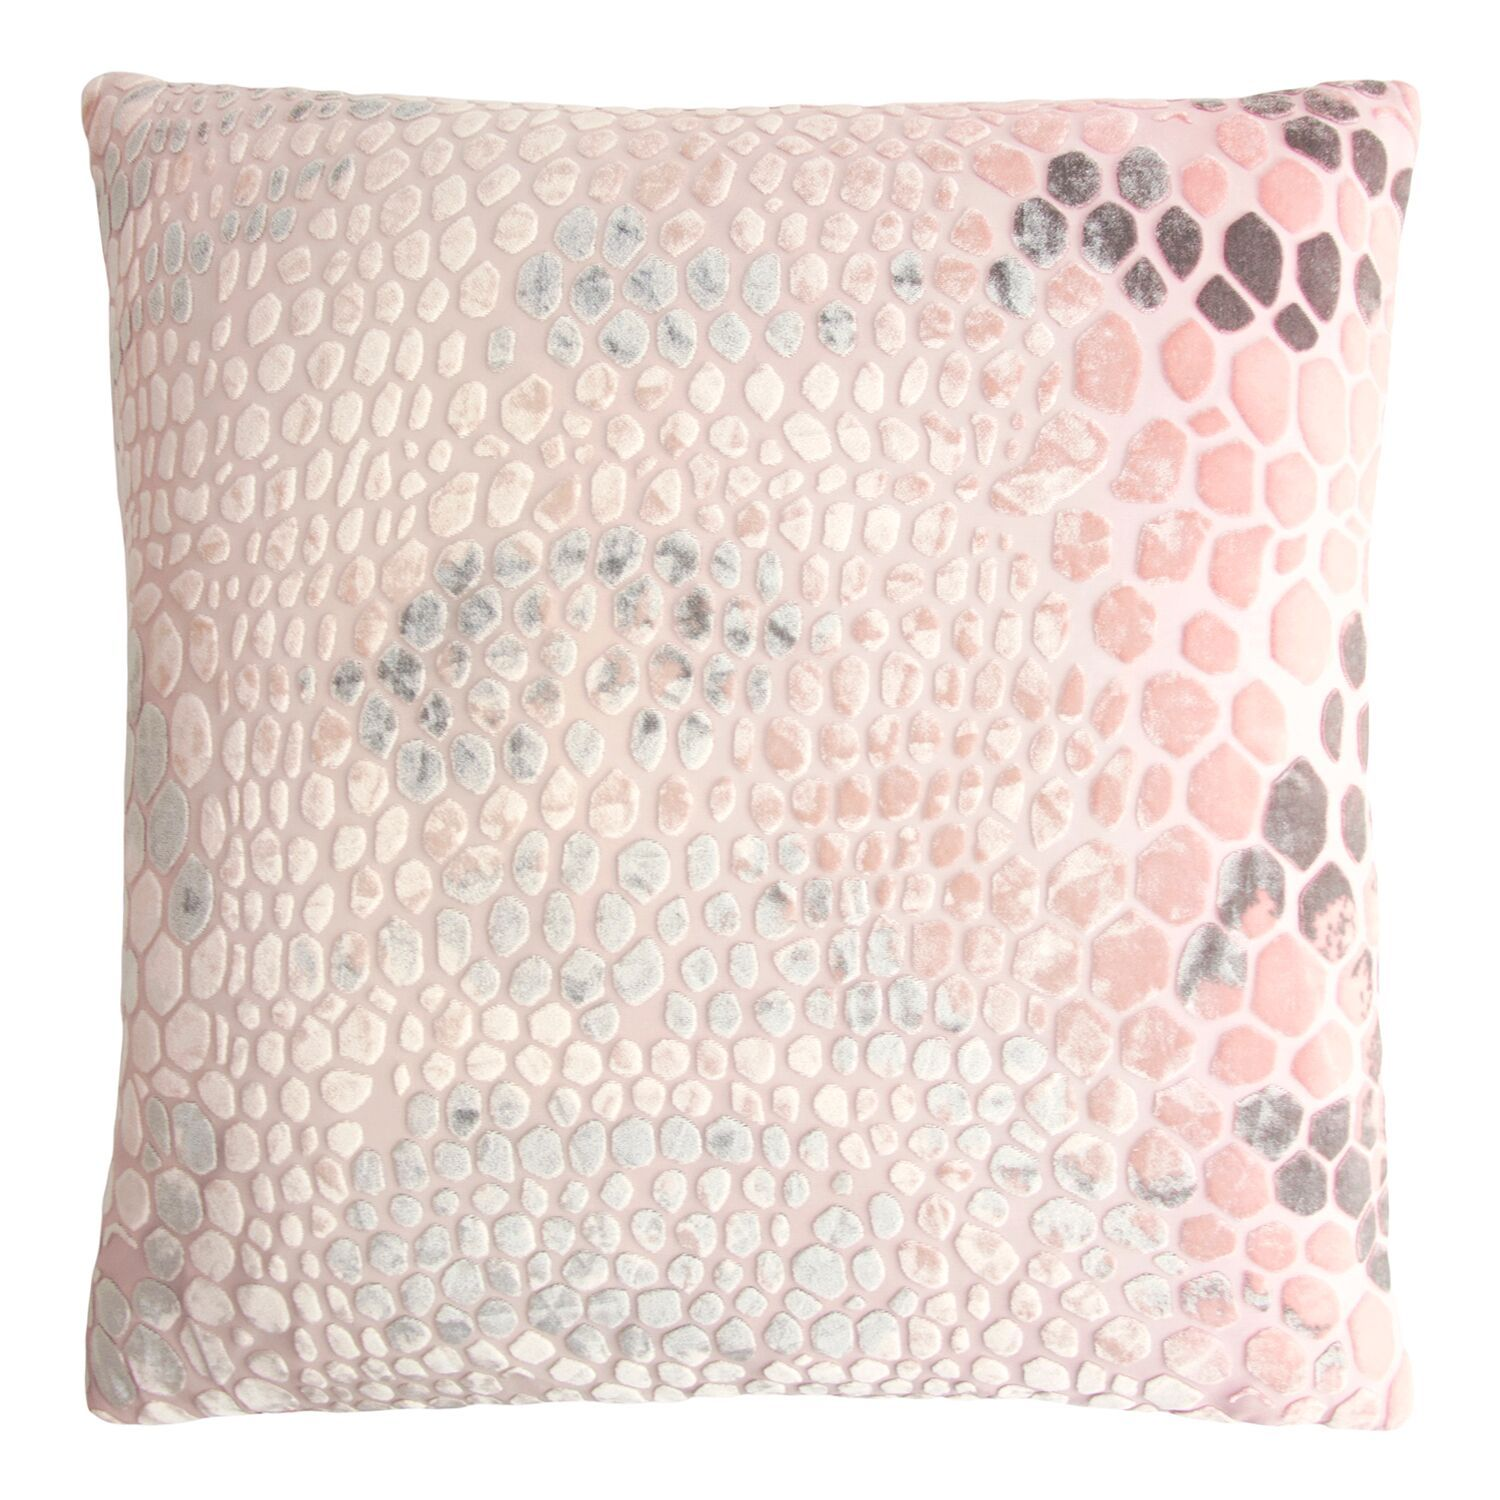 Blush Snakeskin Velvet Pillows by Kevin O'Brien Studio | Fig Linens